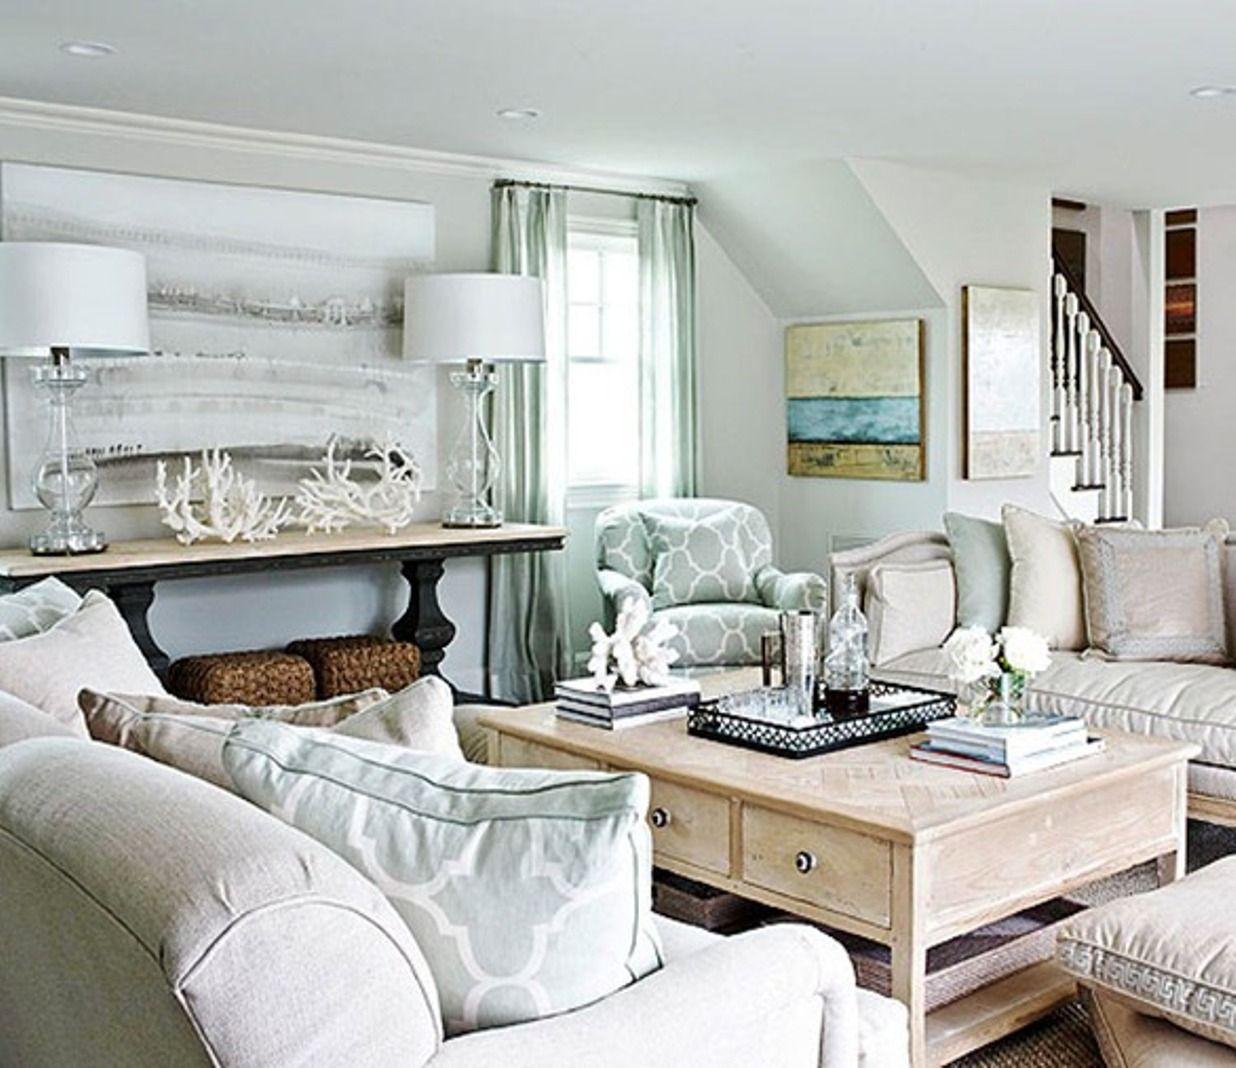 Room Decor Furniture Interior Design Idea Neutral Room: Coastal Light Blue And Neutral Beach House Living Room